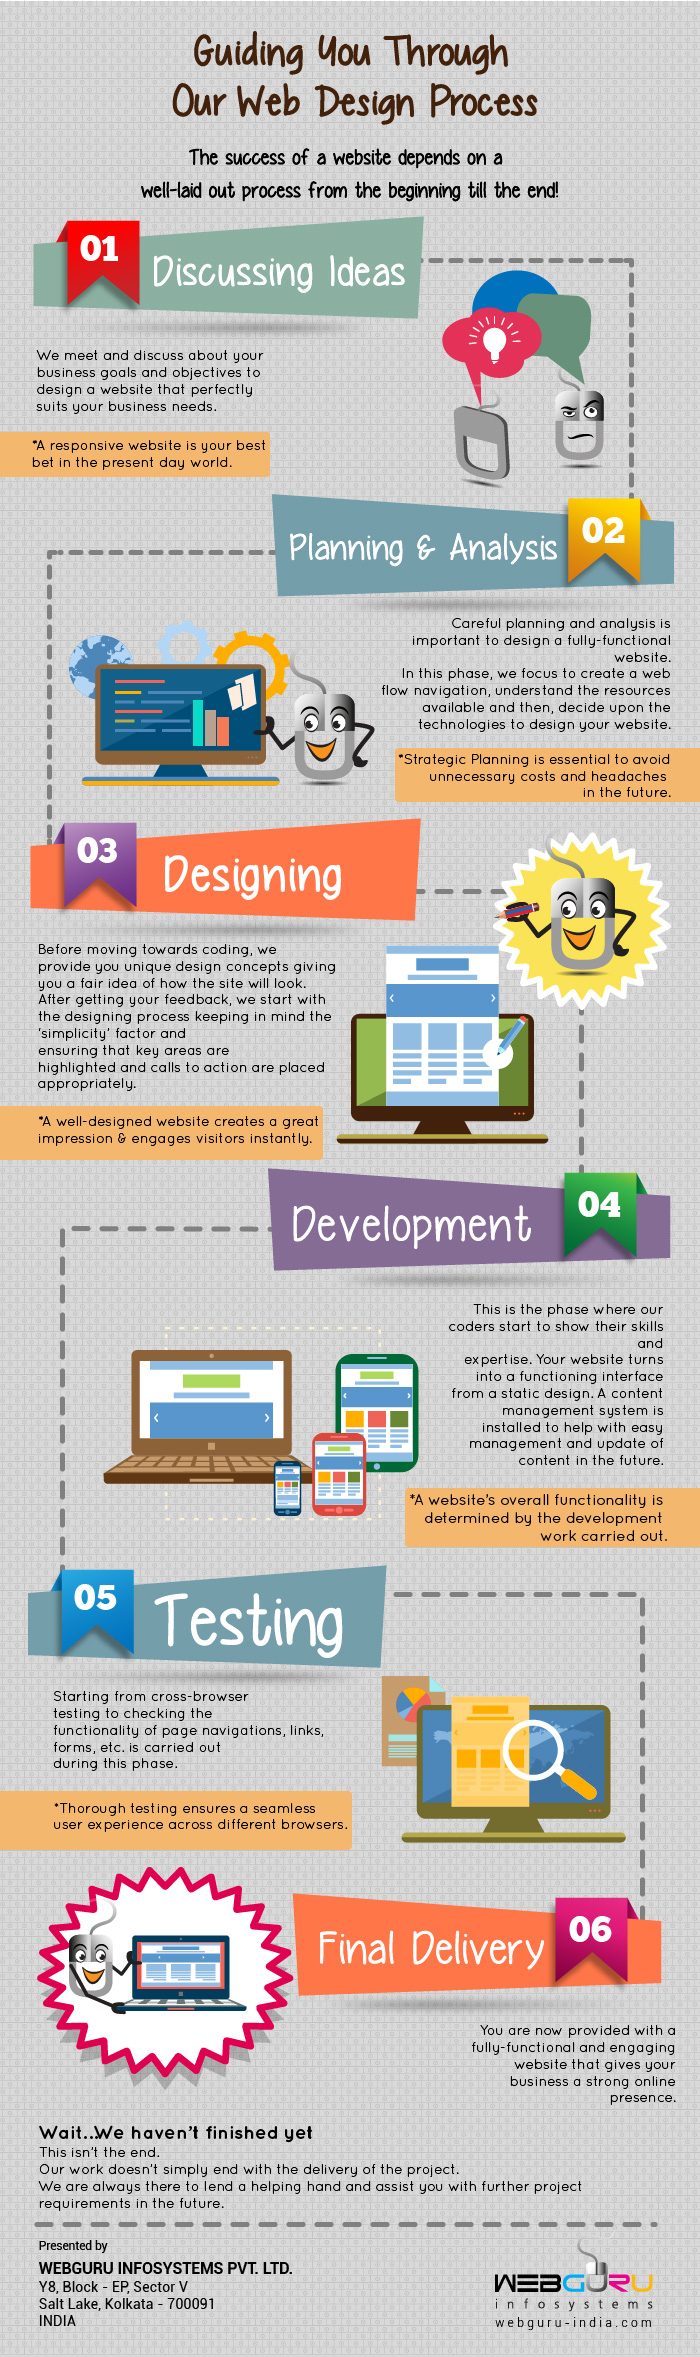 website design process-infographic